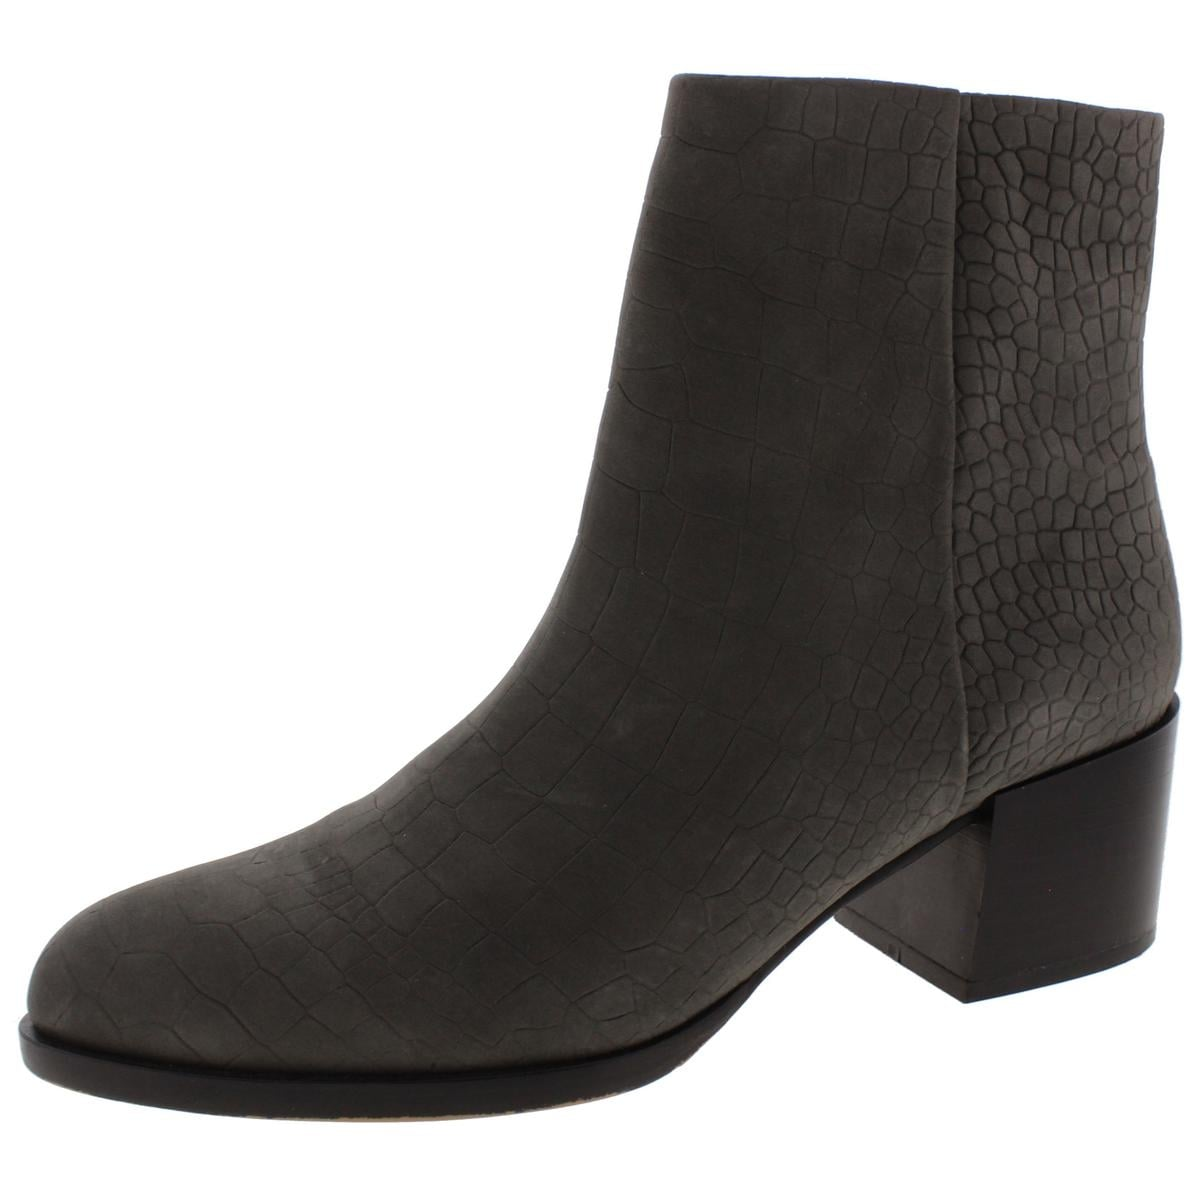 611dc13aebfa42 Shop Sam Edelman Womens Joey Ankle Boots Leather Stacked Heel - Free  Shipping Today - Overstock - 13147831